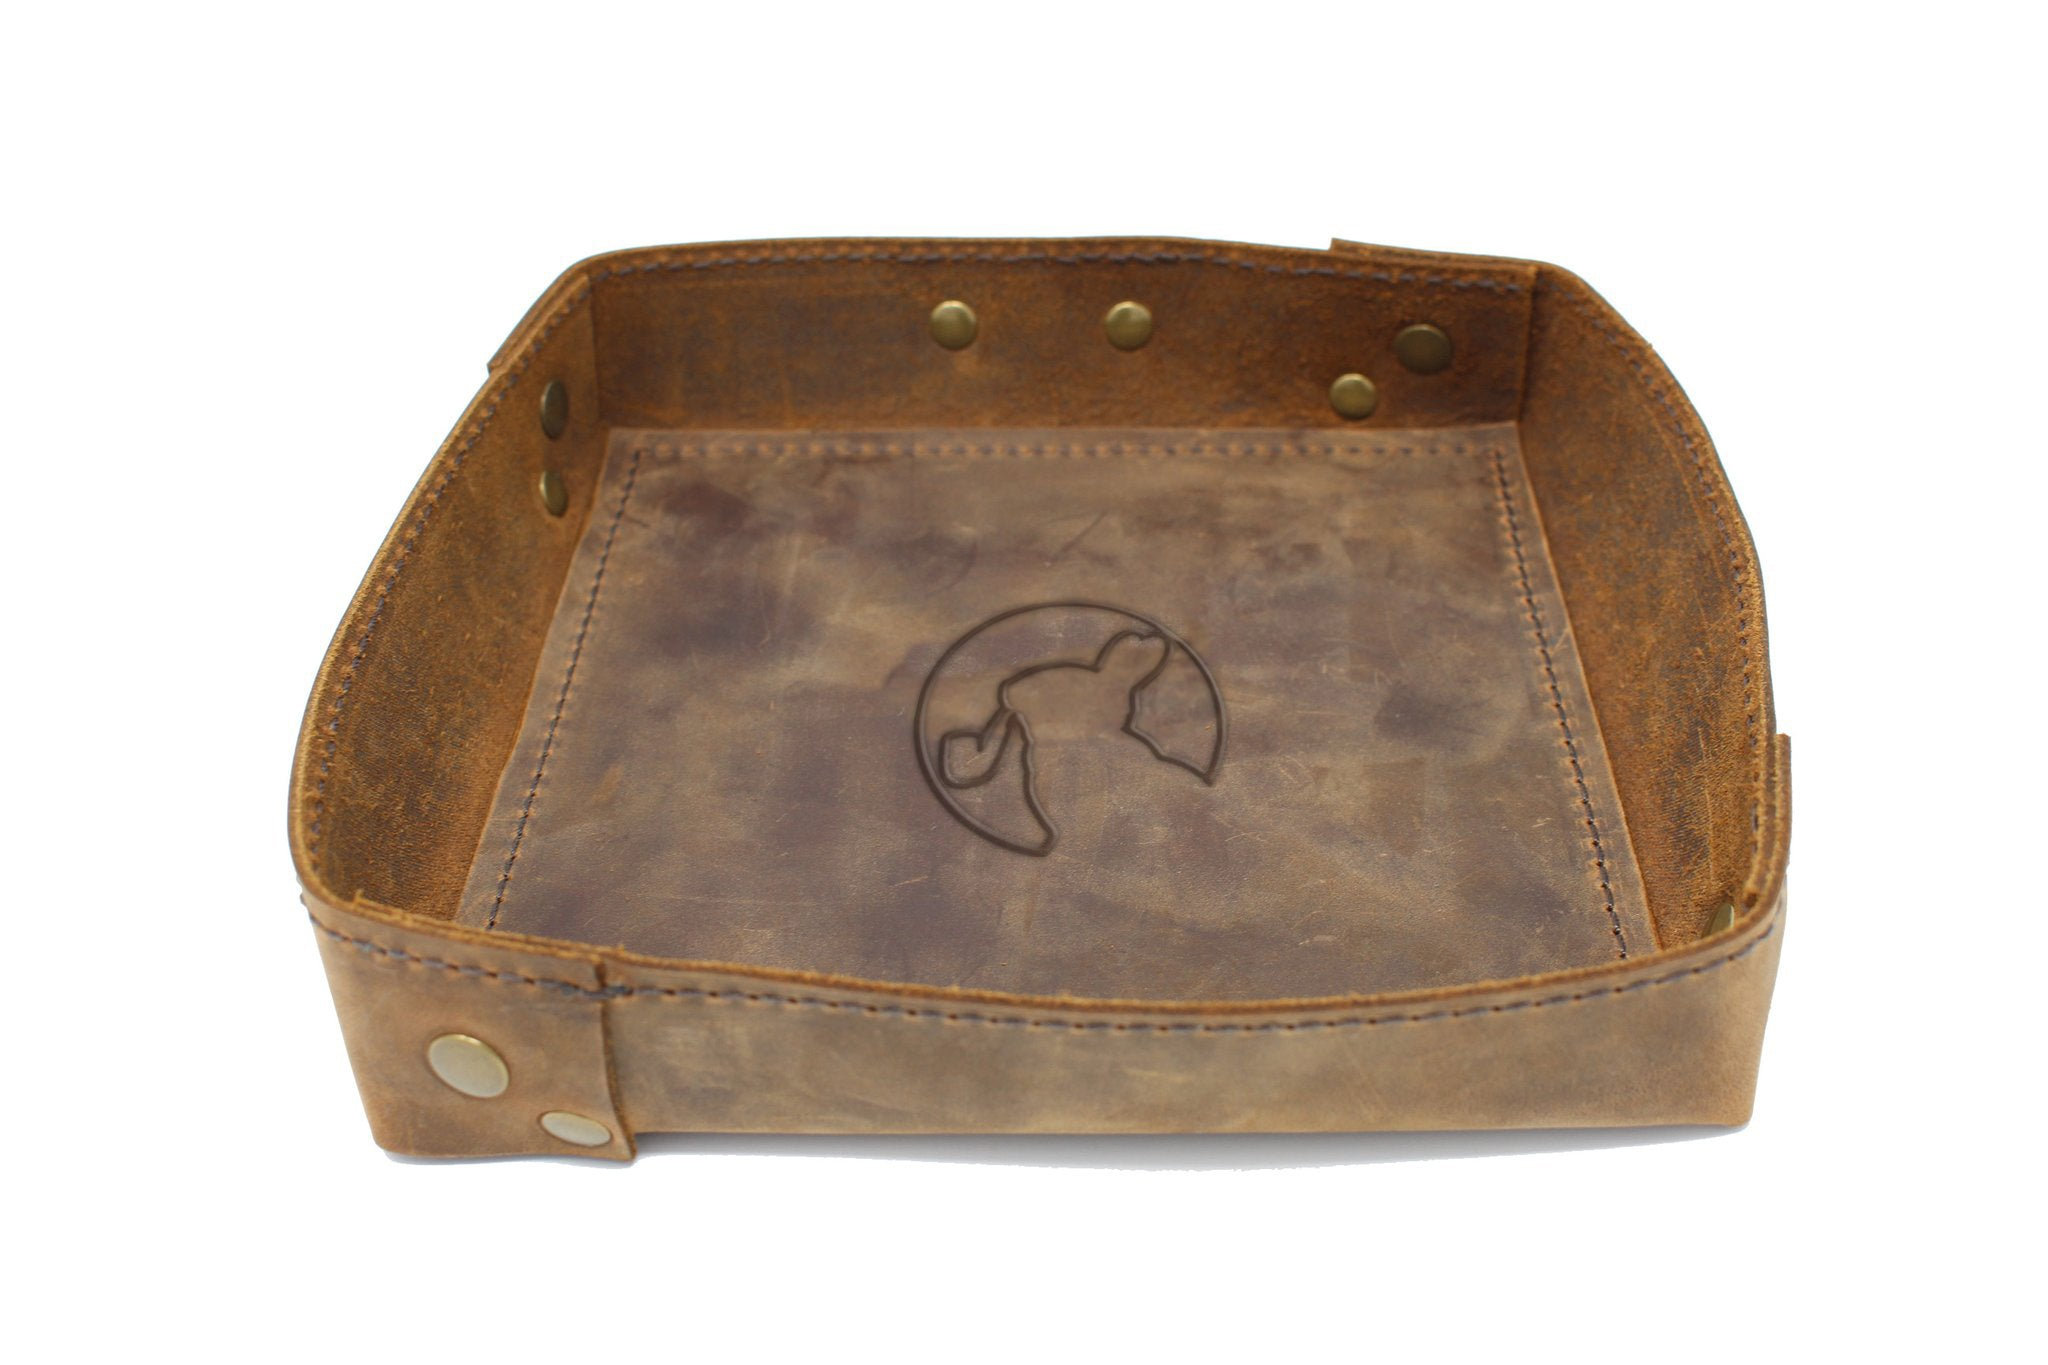 Rabbit Room Leather Valet Tray